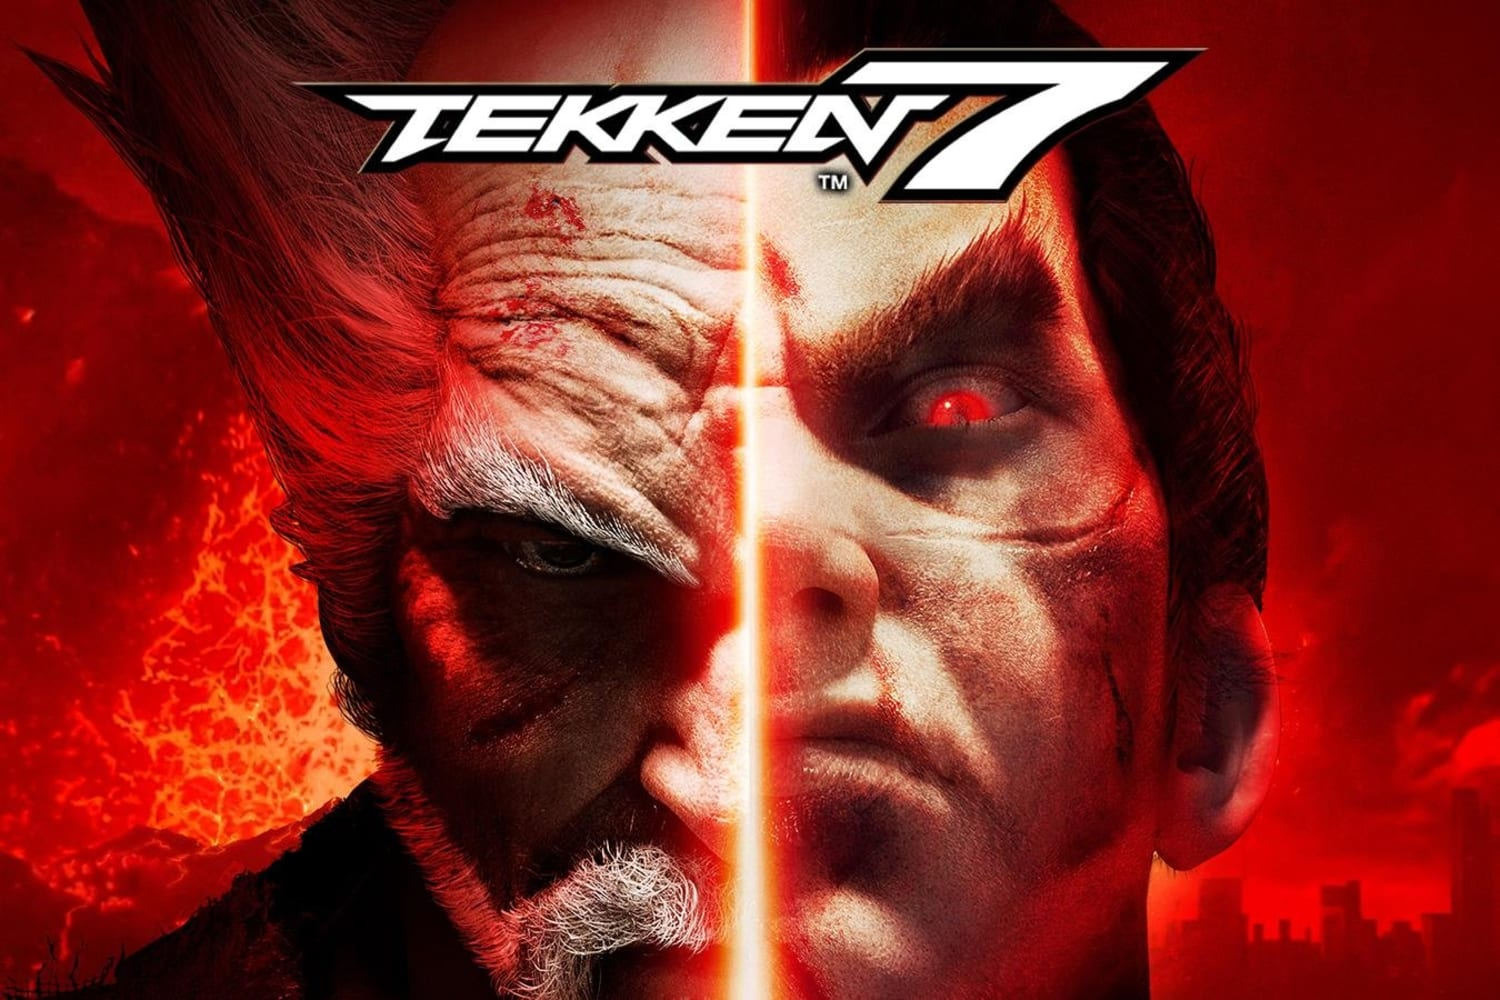 Here's everything you should know if you're new to Tekken 7